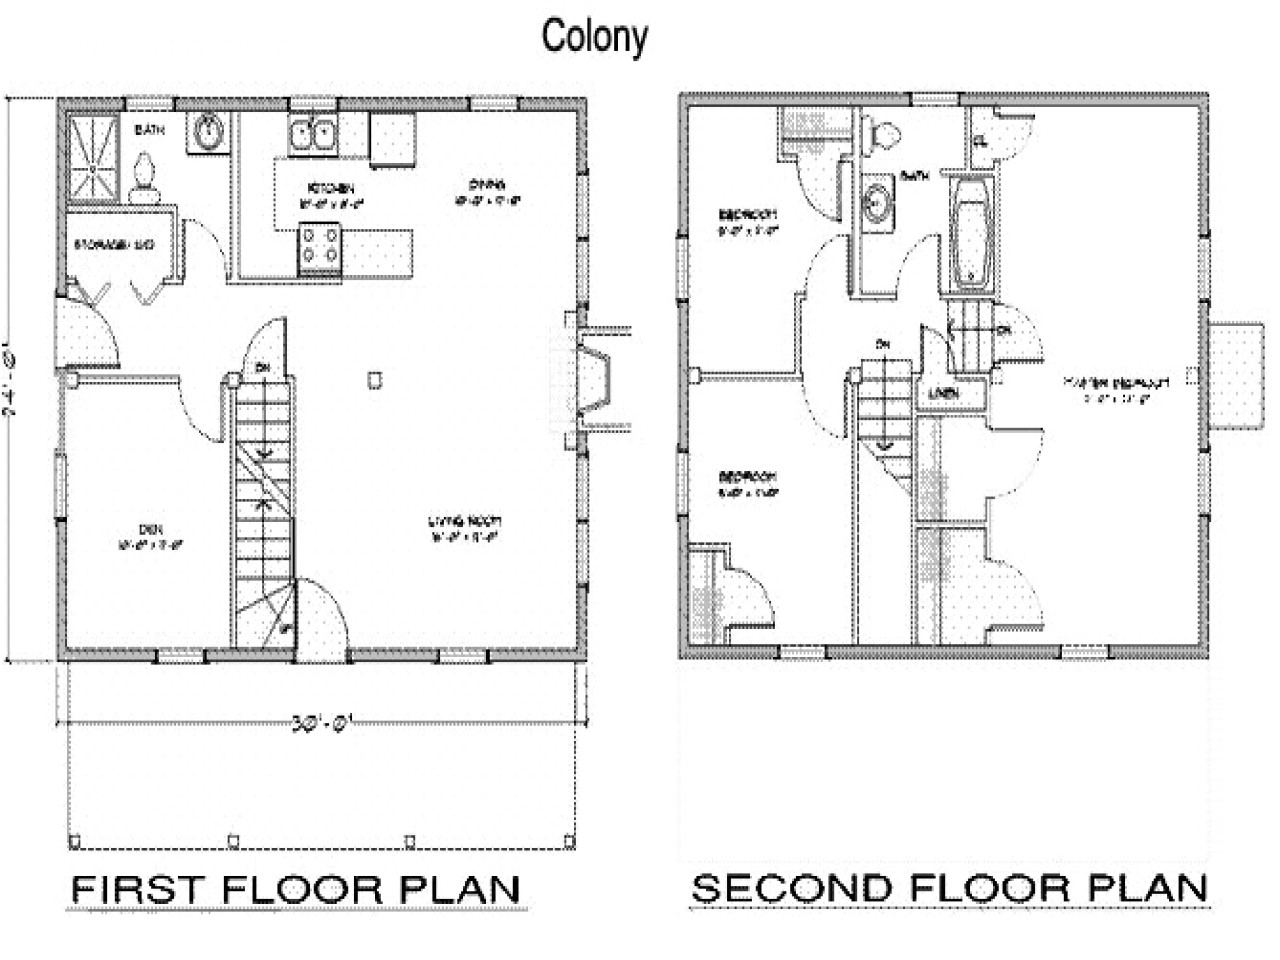 d0a268f194cea9d9 6x6s timber frame timber frame home floor plans